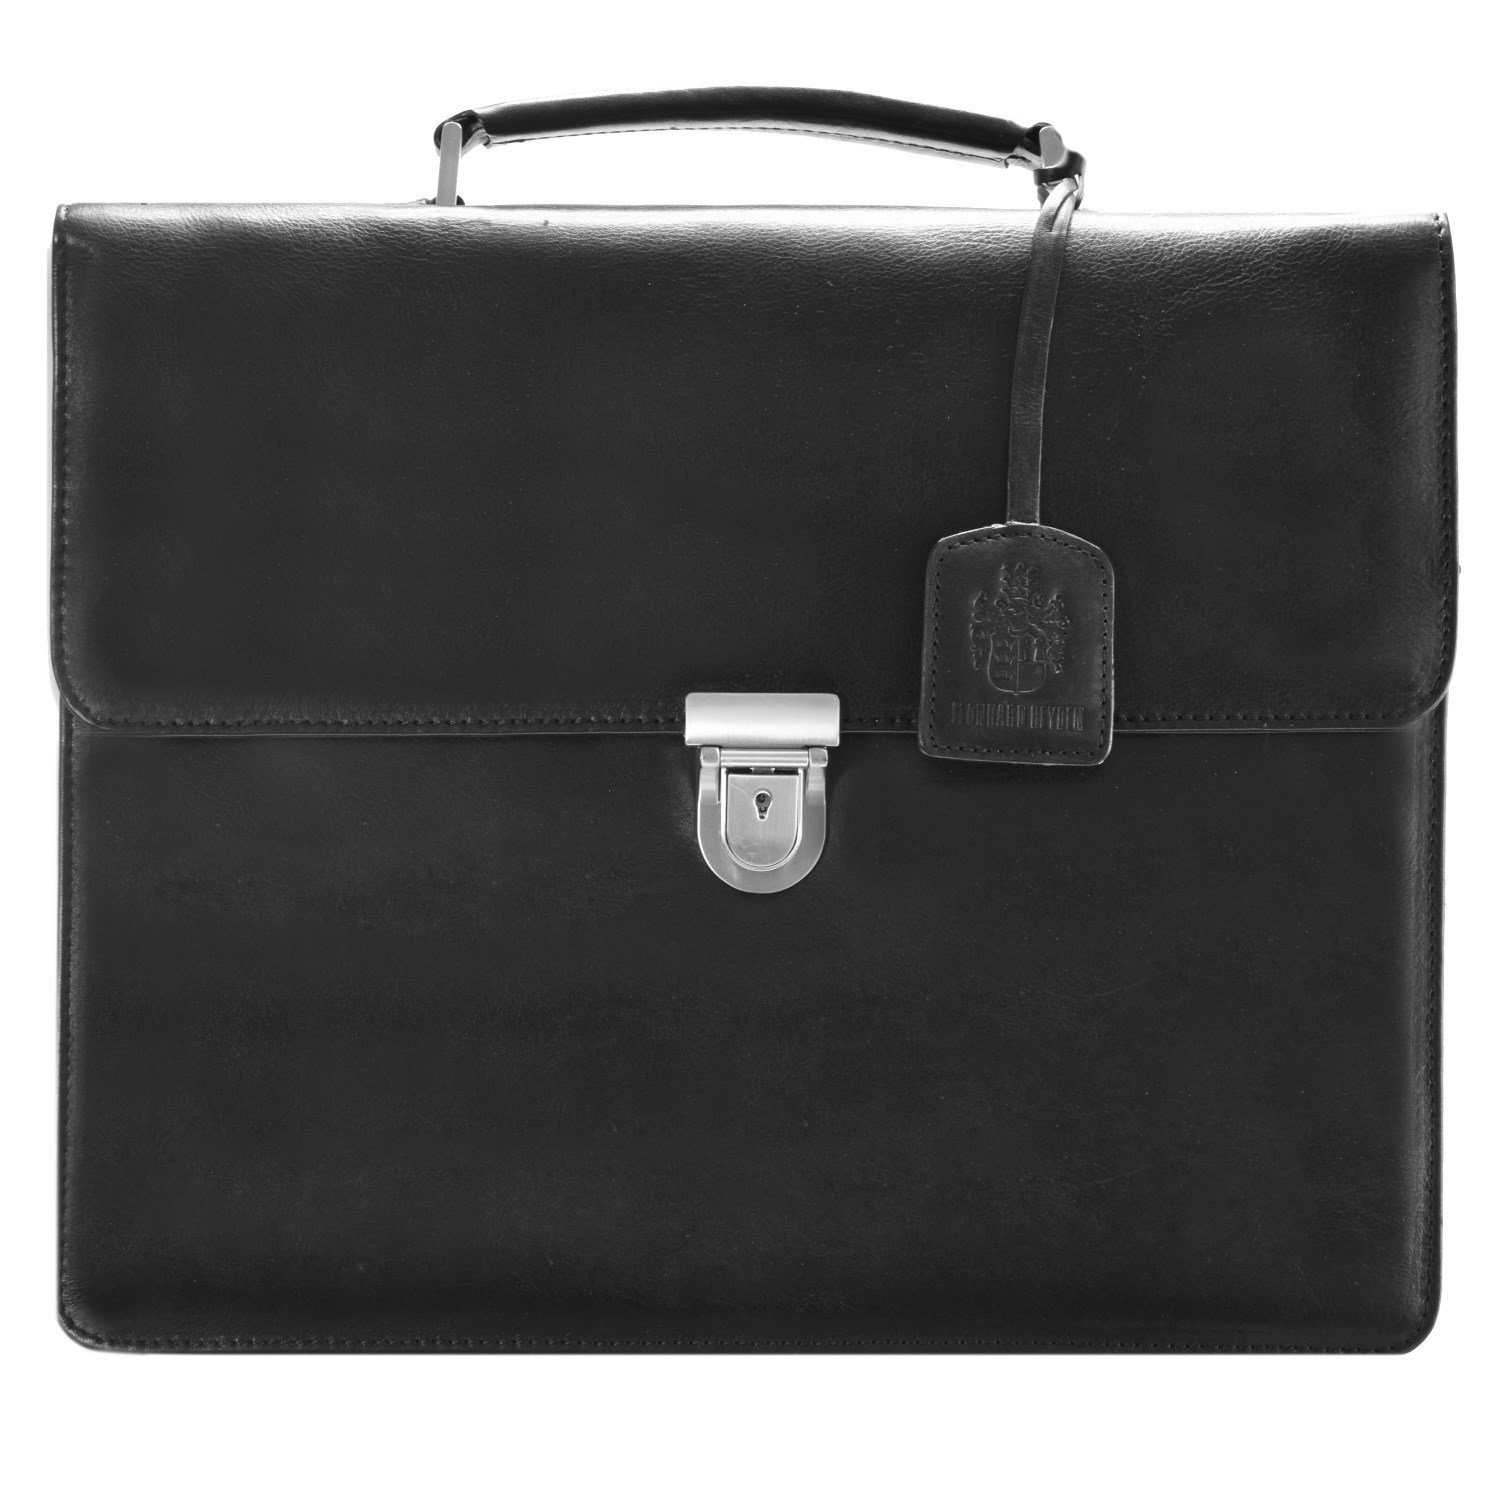 Leonhard Heyden Cambridge Aktentasche Leder 38 cm Laptopfach